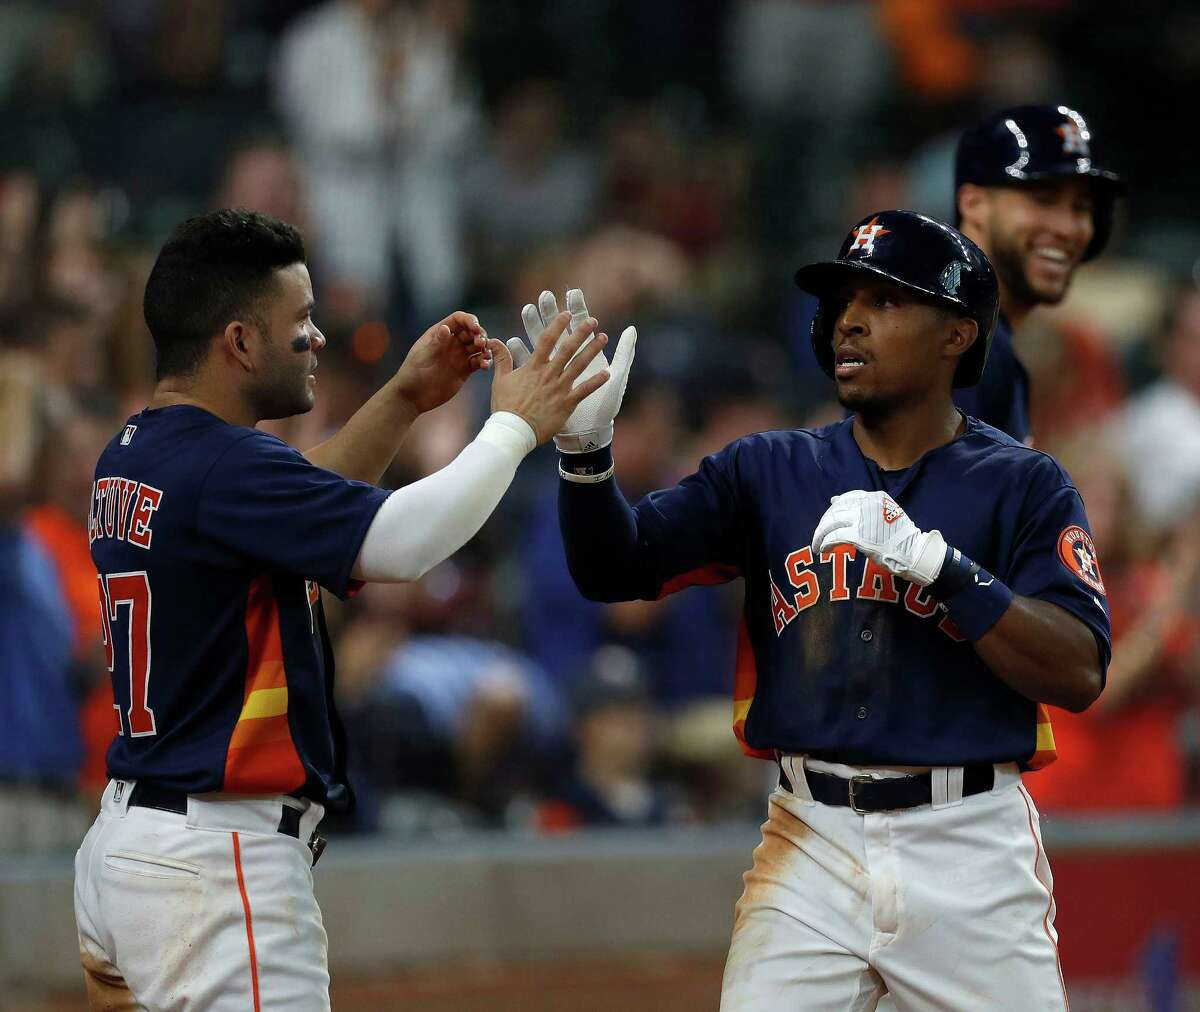 Houston Astros Tony Kemp (16) celebrates his first major league home run during the fifth inning with Jose Altuve (27) during an MLB game at Minute Maid Park, Sunday, Sept. 25, 2016 in Houston.